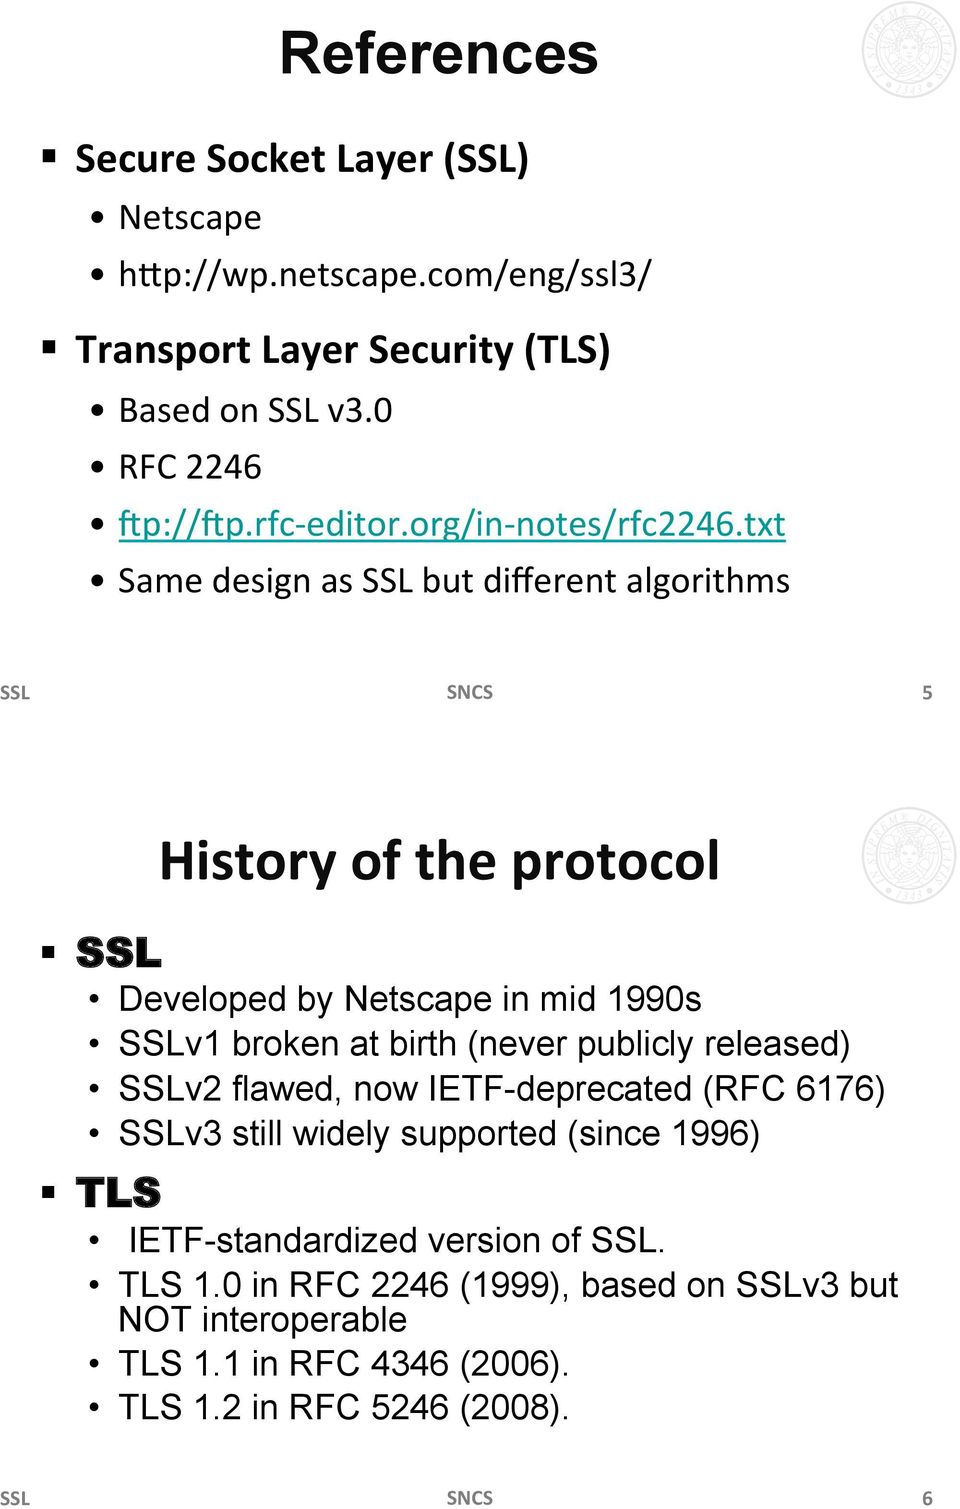 SSL Developed by Netscape in mid 1990s SSLv1 broken at birth (never publicly released) SSLv2 flawed, now IETF-deprecated (RFC 6176) SSLv3 still